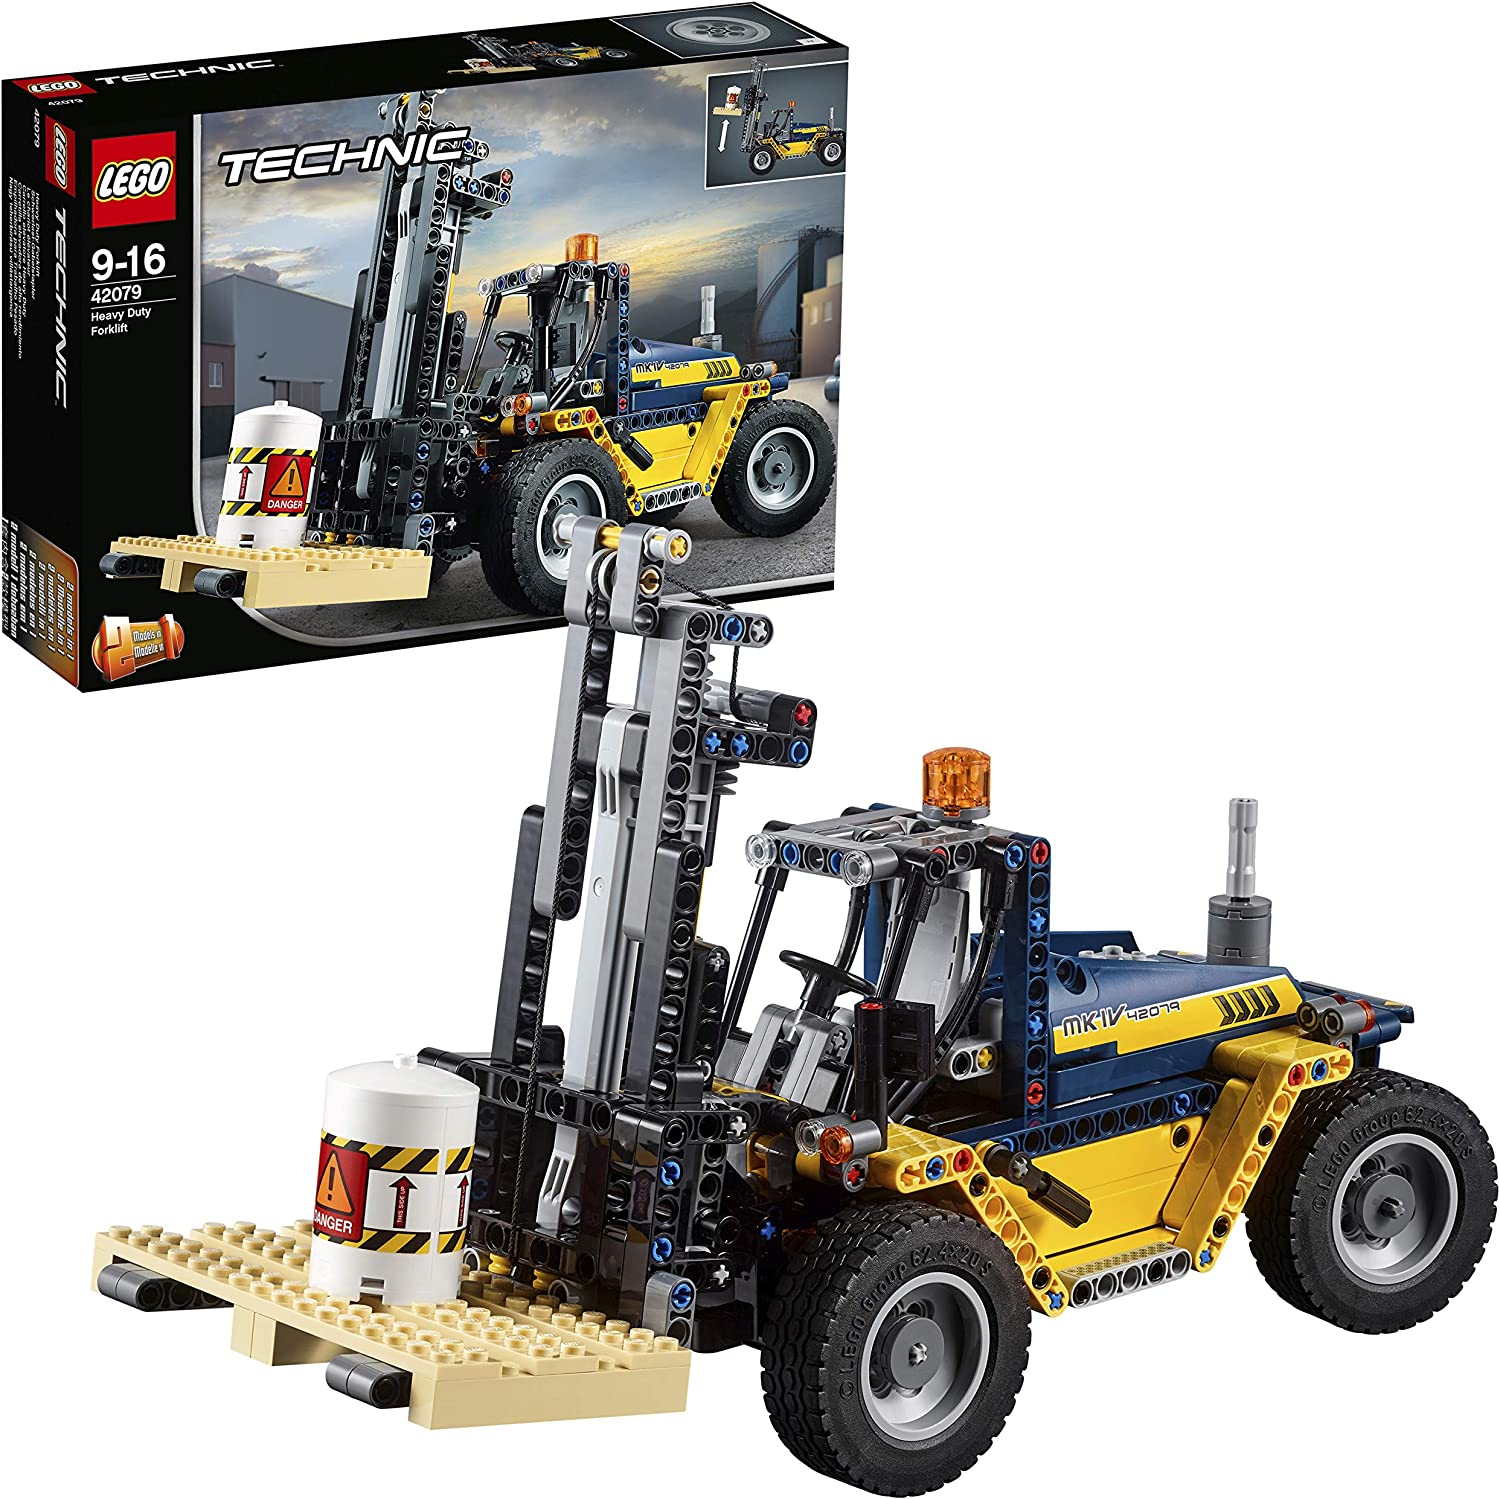 LEGO 42079 Technic Heavy Duty Forklift 2-in-1 Tow Truck with Crane Building Set